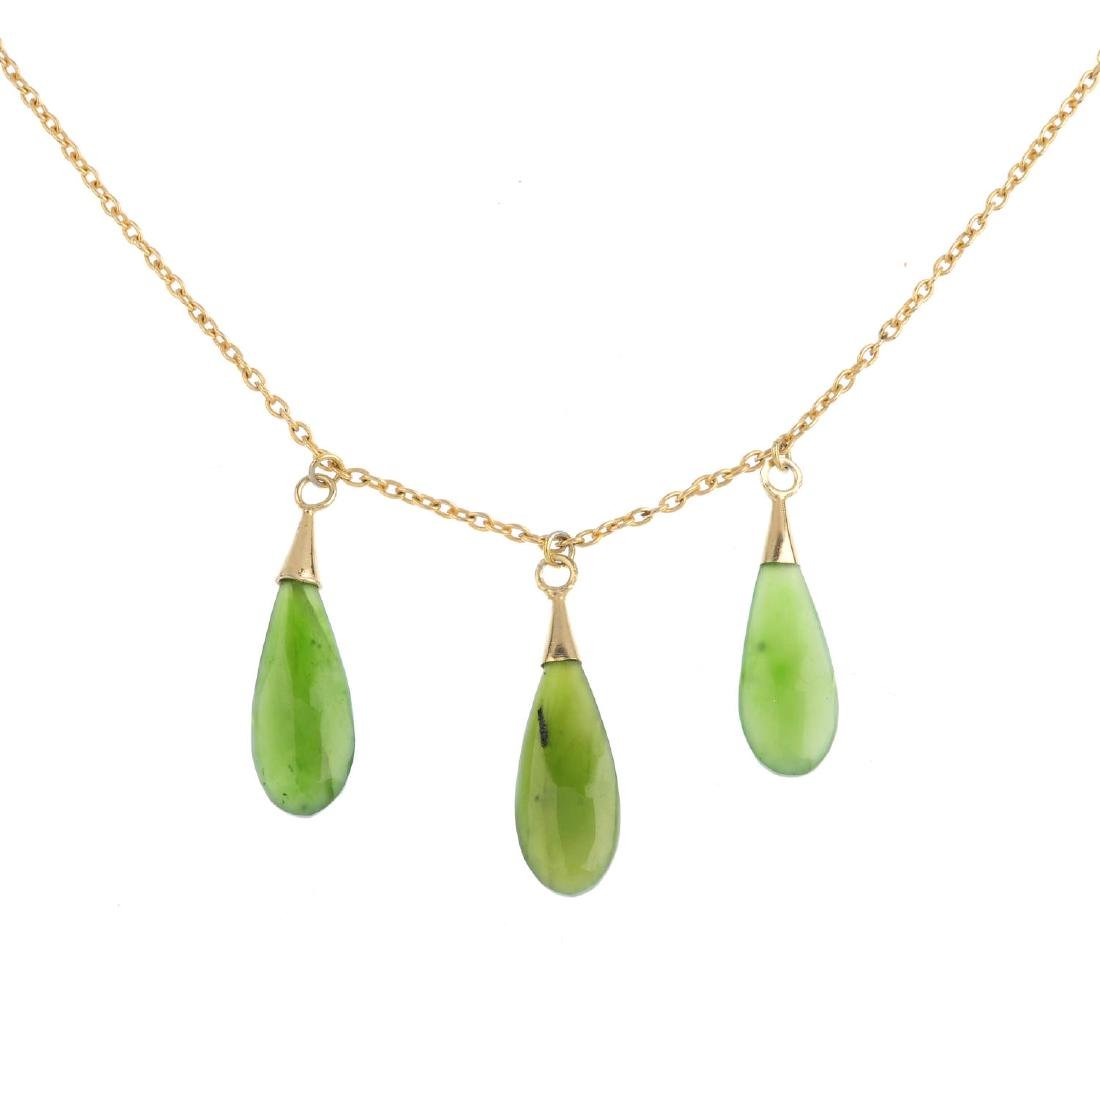 A jade necklace. Designed as three pear-shape nephrite